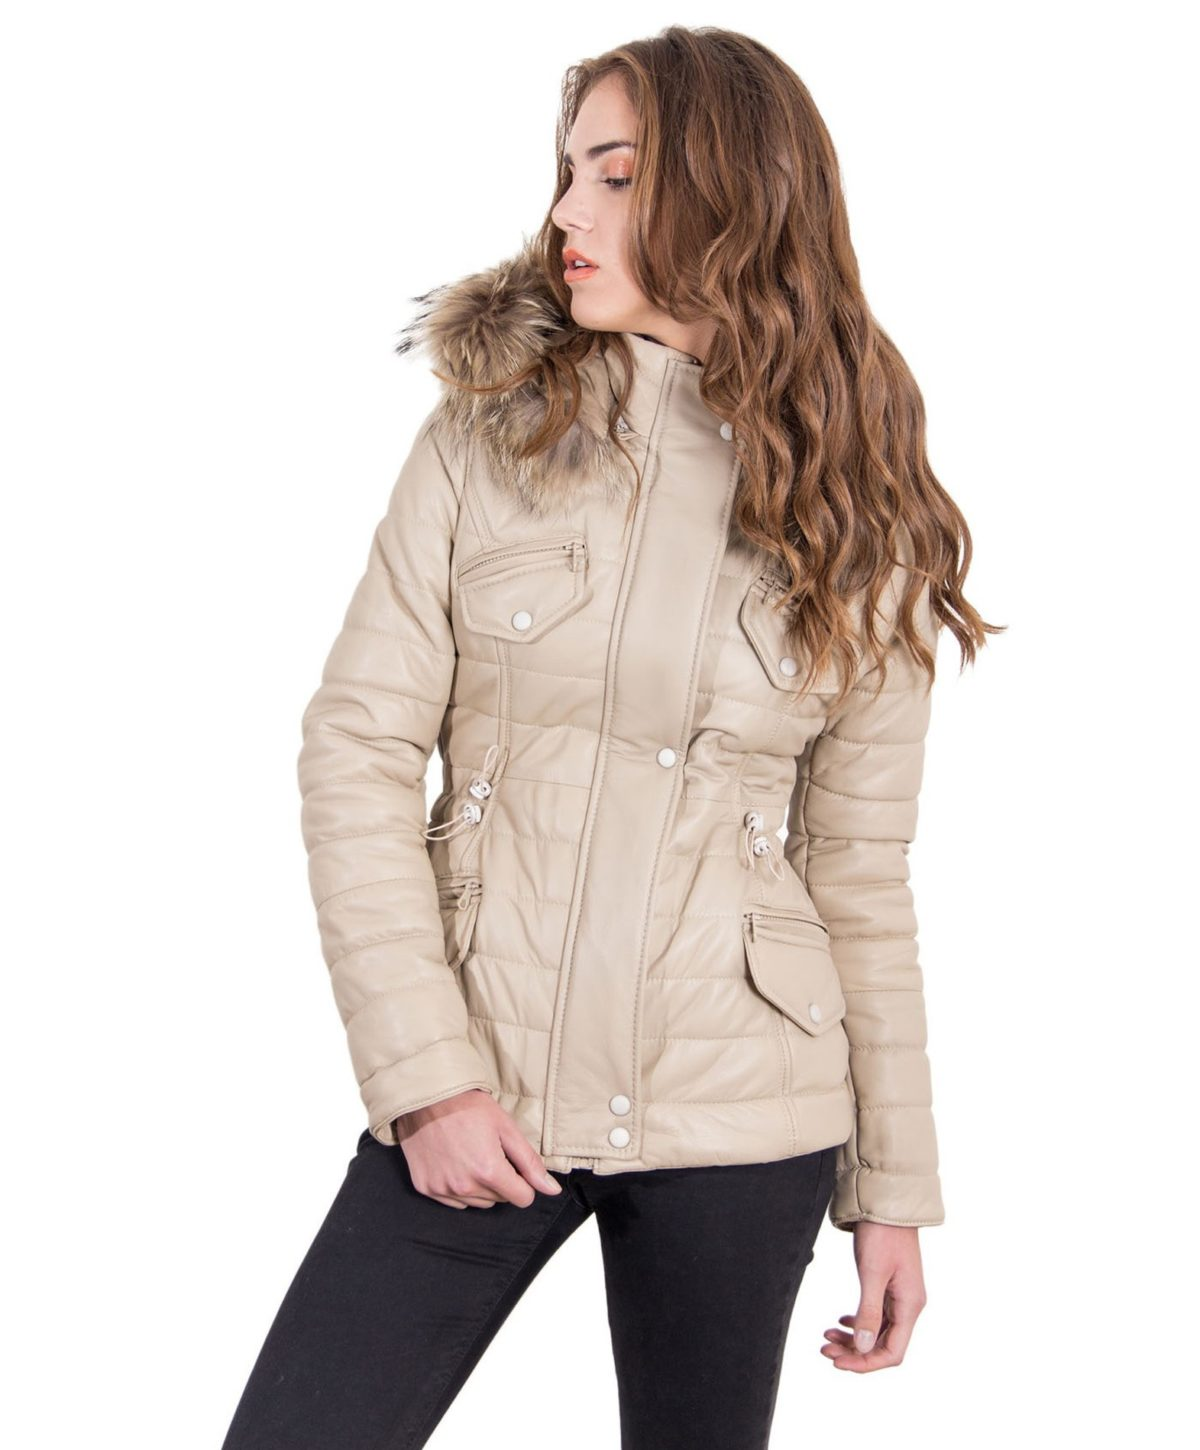 lucilla-beige-color-nappa-lamb-leather-fox-hooded-down-jacket-smooth-effect (3)